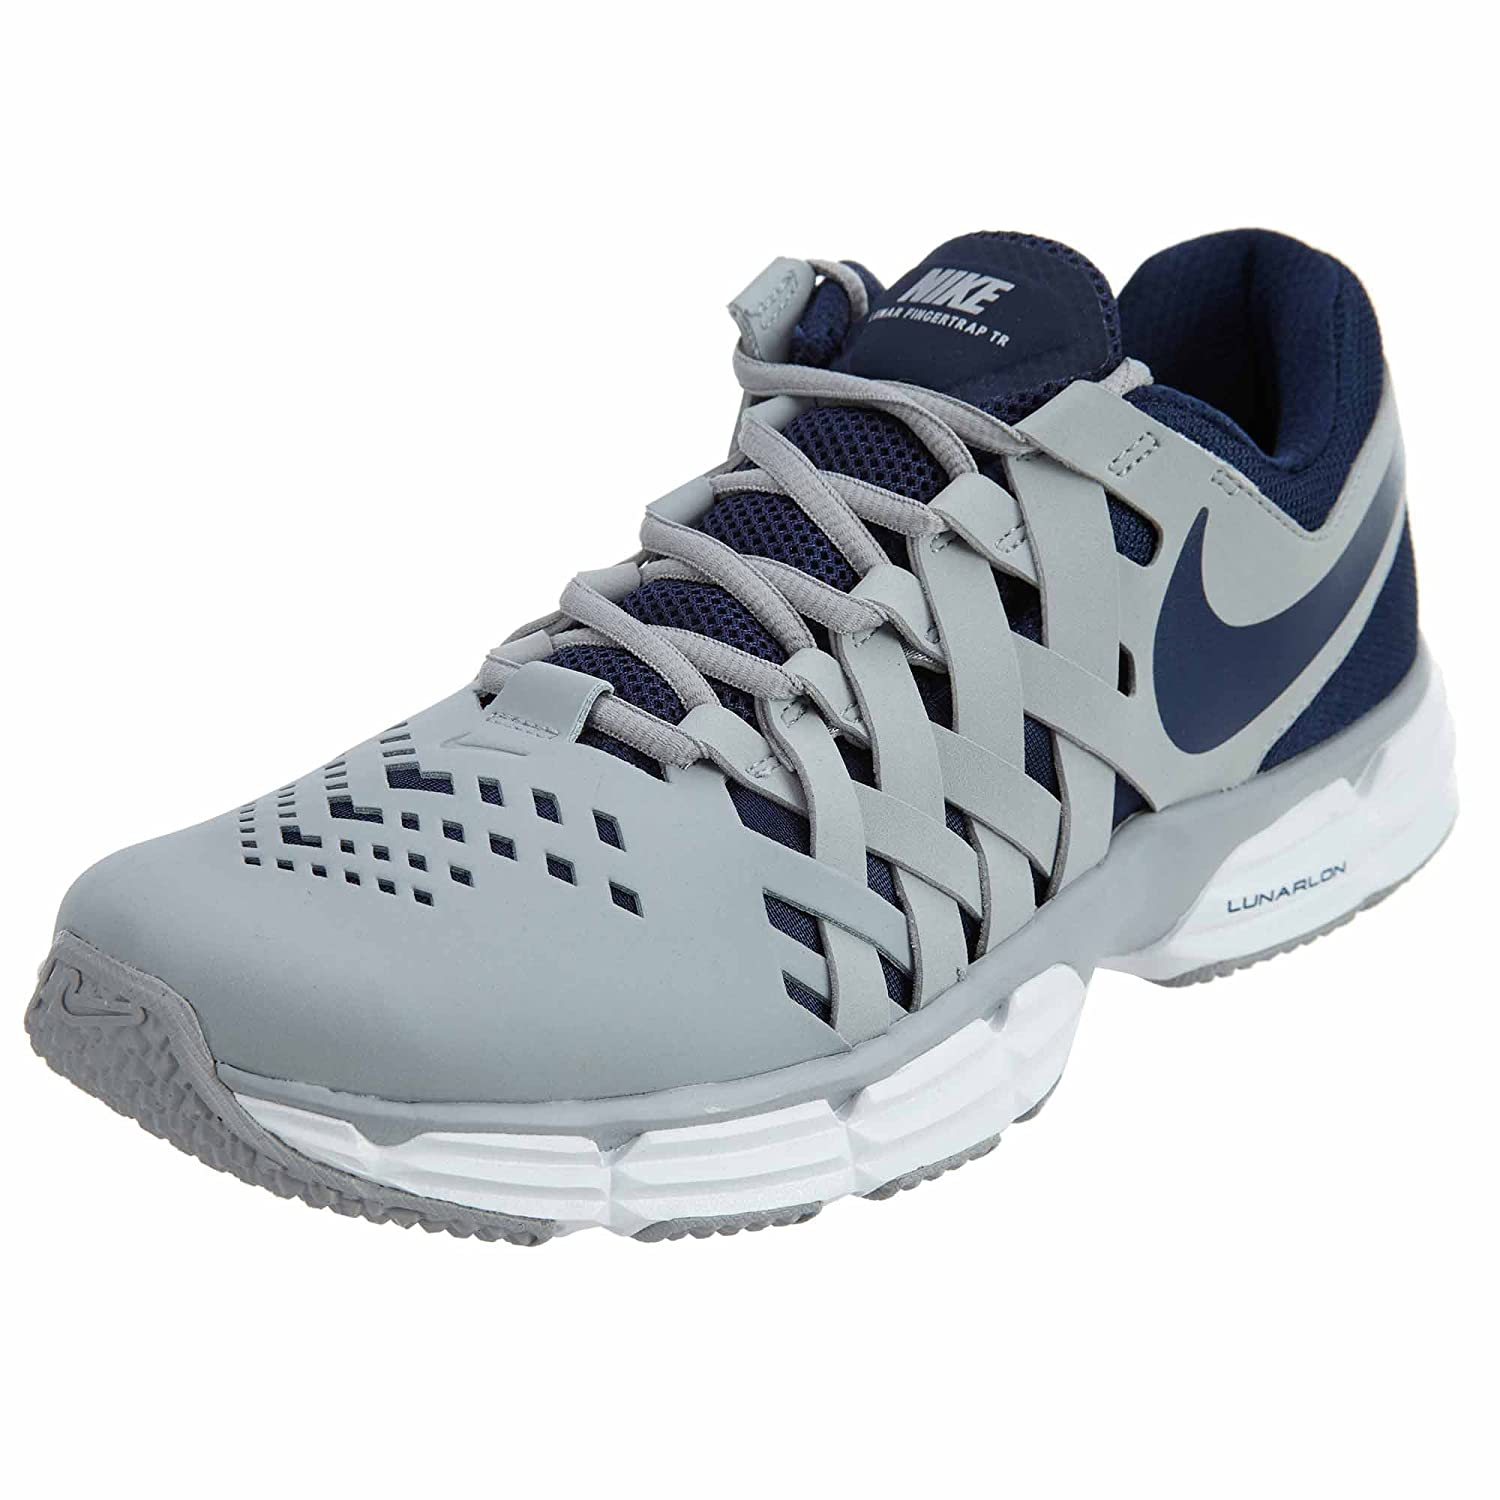 836f3811c50 Nike Men s Lunar Fingertrap TR Running Shoes  Buy Online at Low Prices in  India - Amazon.in